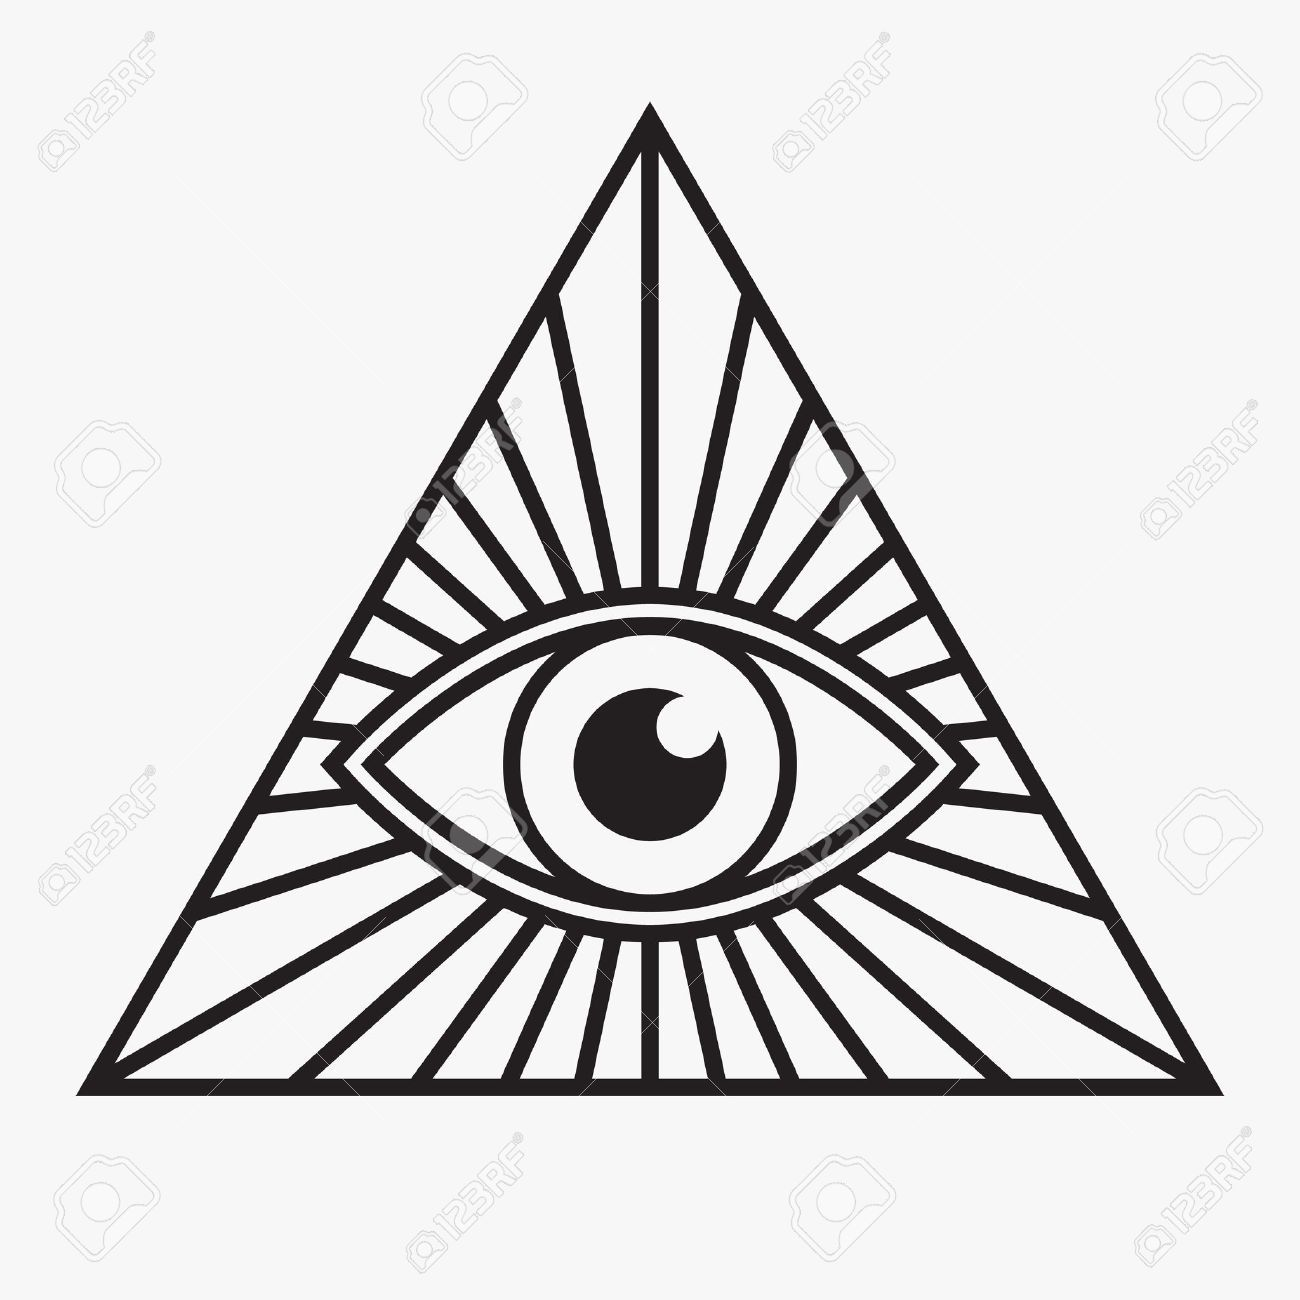 all seeing eye symbol vector illustration tattoo pinterest rh pinterest com Masonic Eye Logo Vector World Map Vector